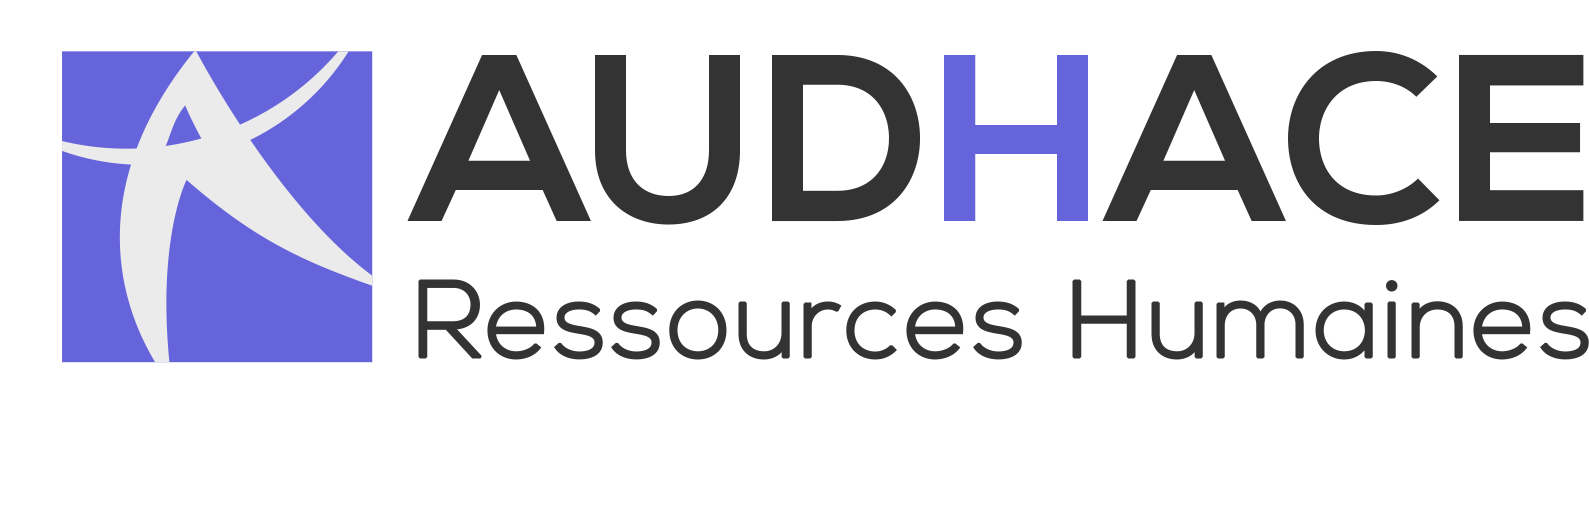 Audhace Ressources Humaines